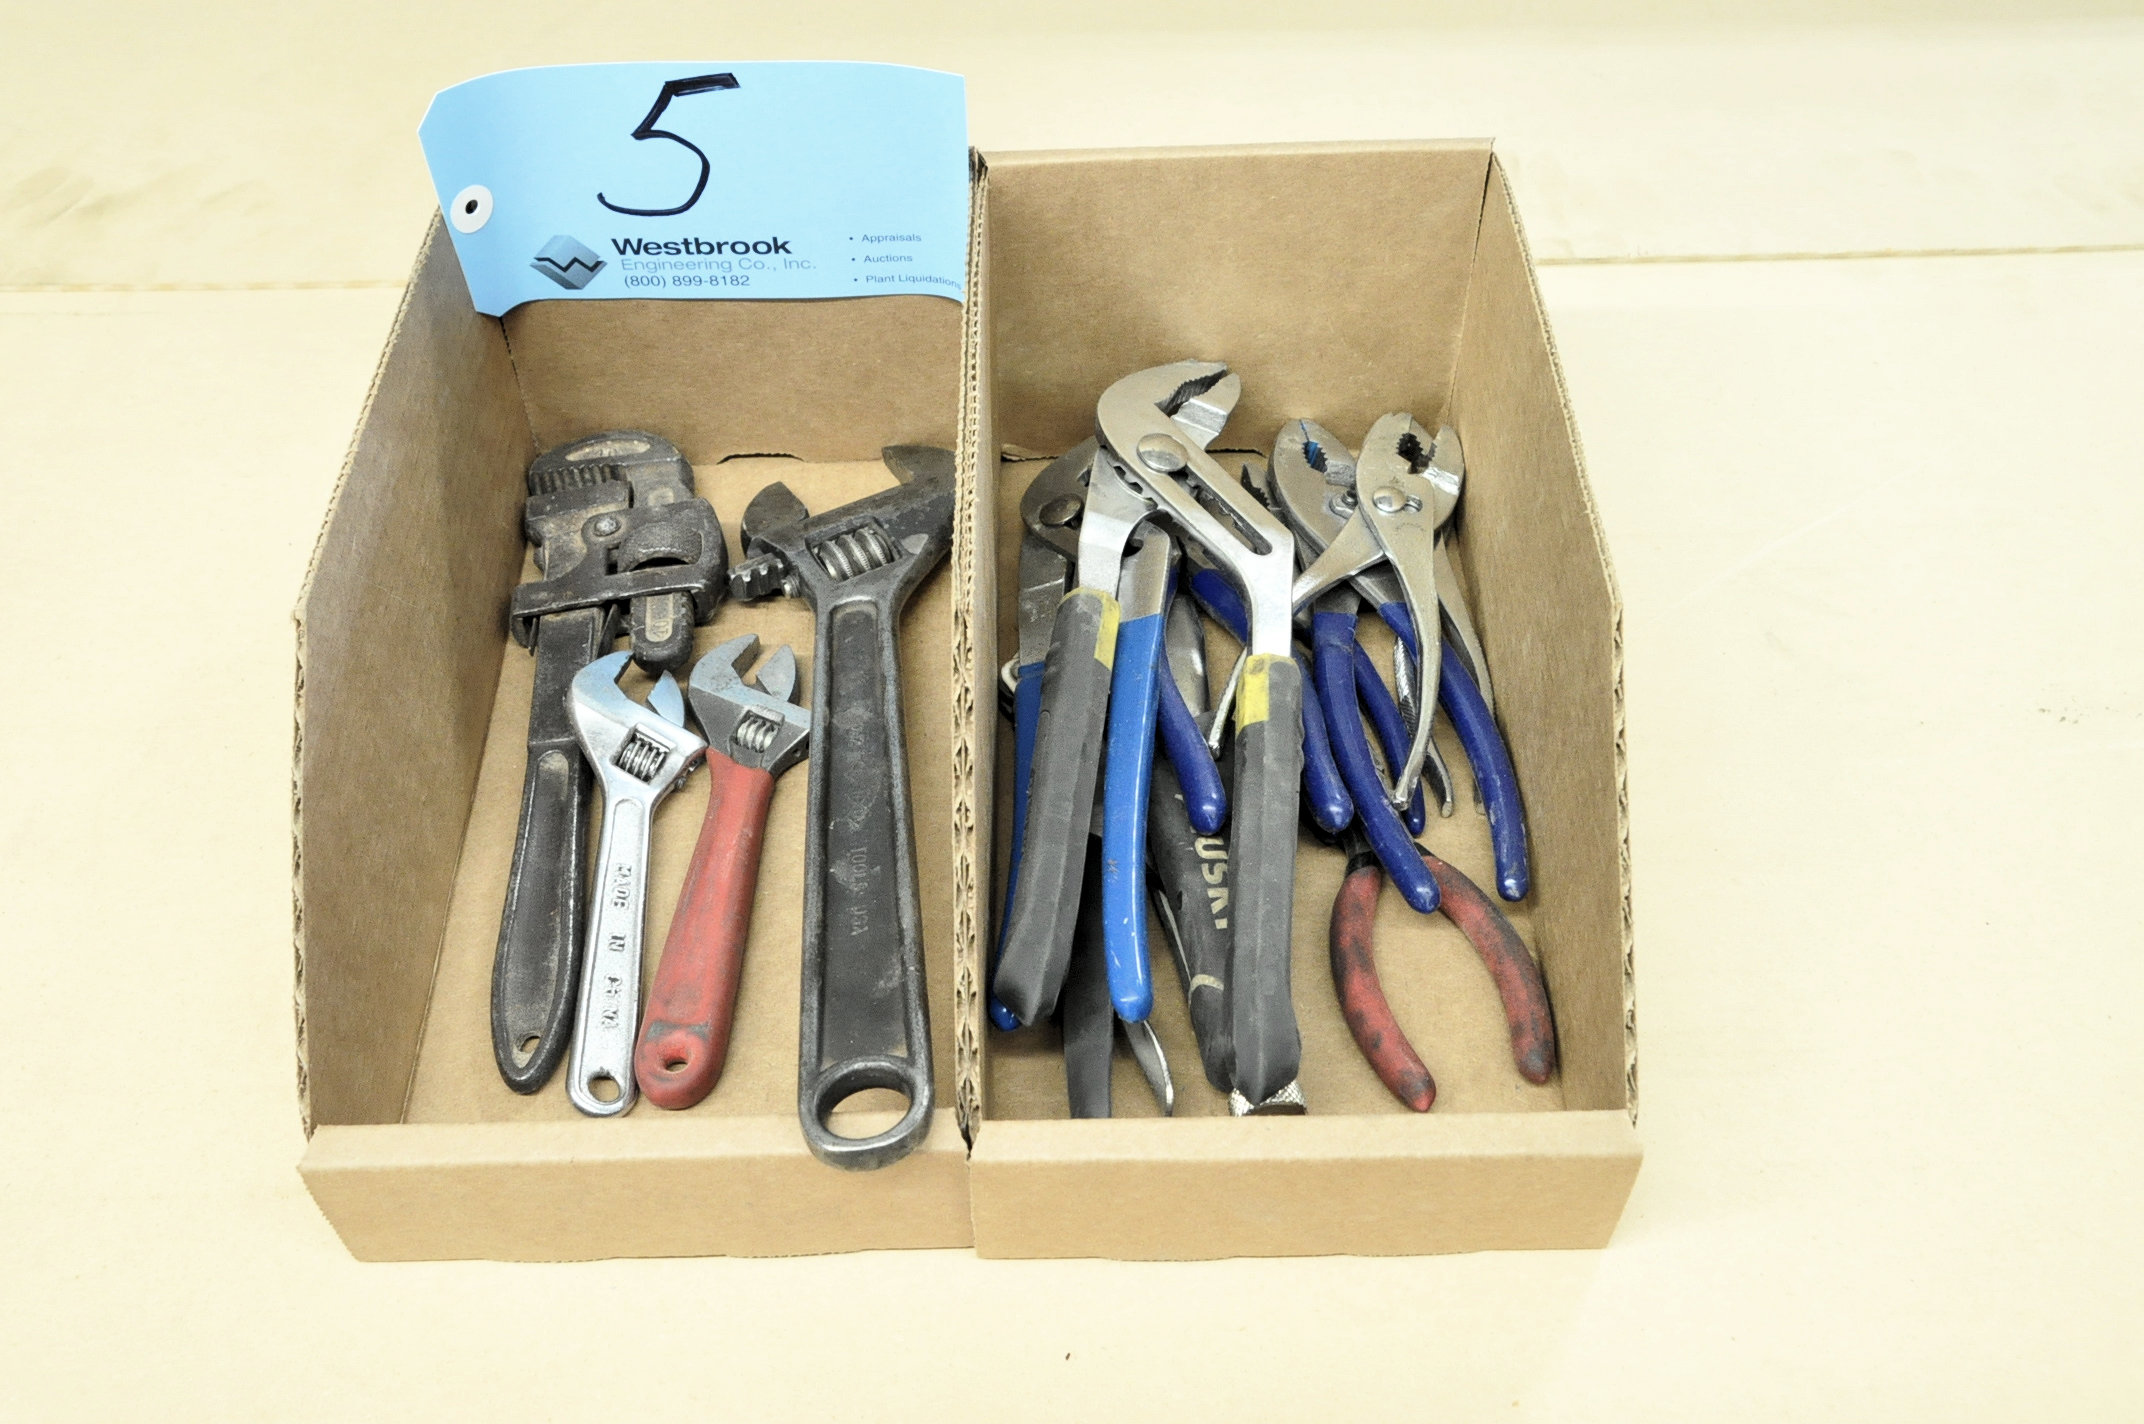 Lot-(1) Pipe Wrench, (3) Adjustable Wrenches and Pliers in (2) Boxes